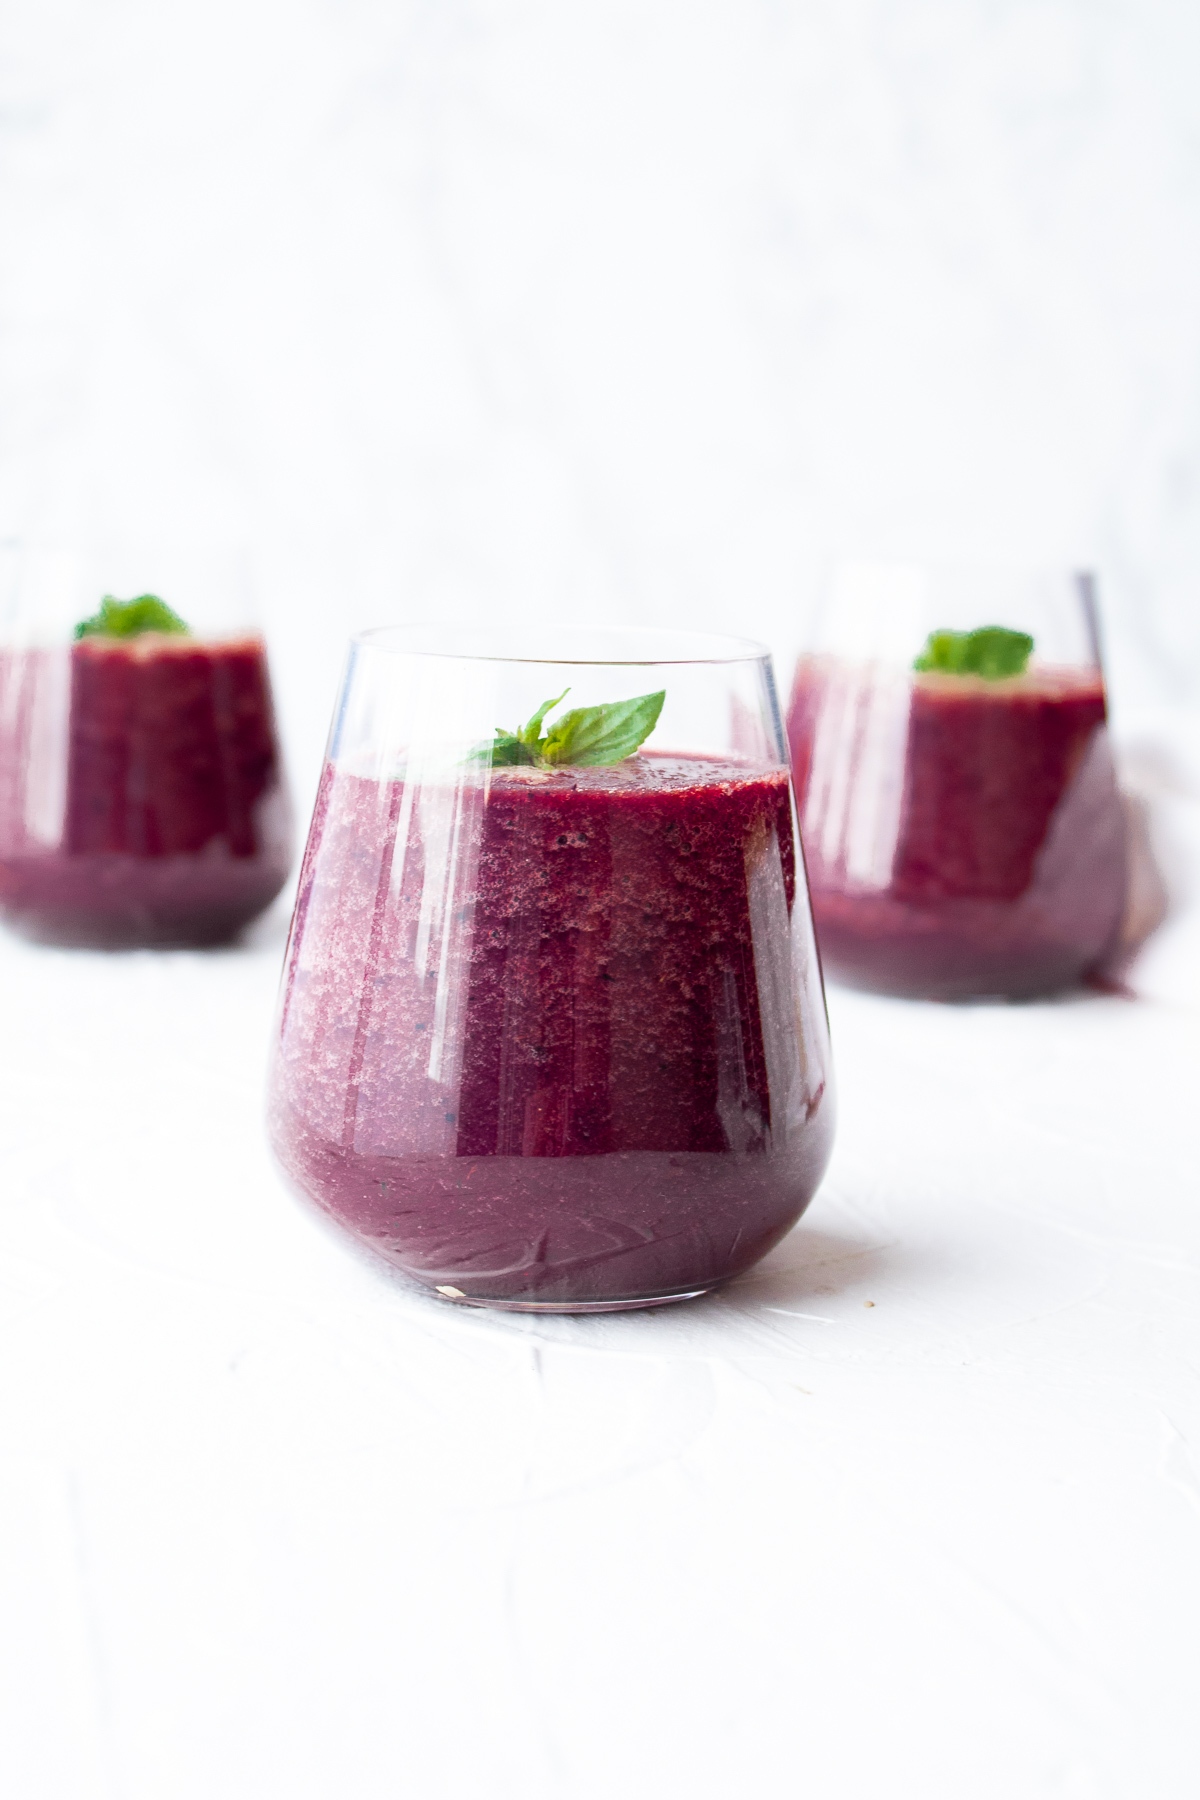 Sweet Spinach Beet Smoothie